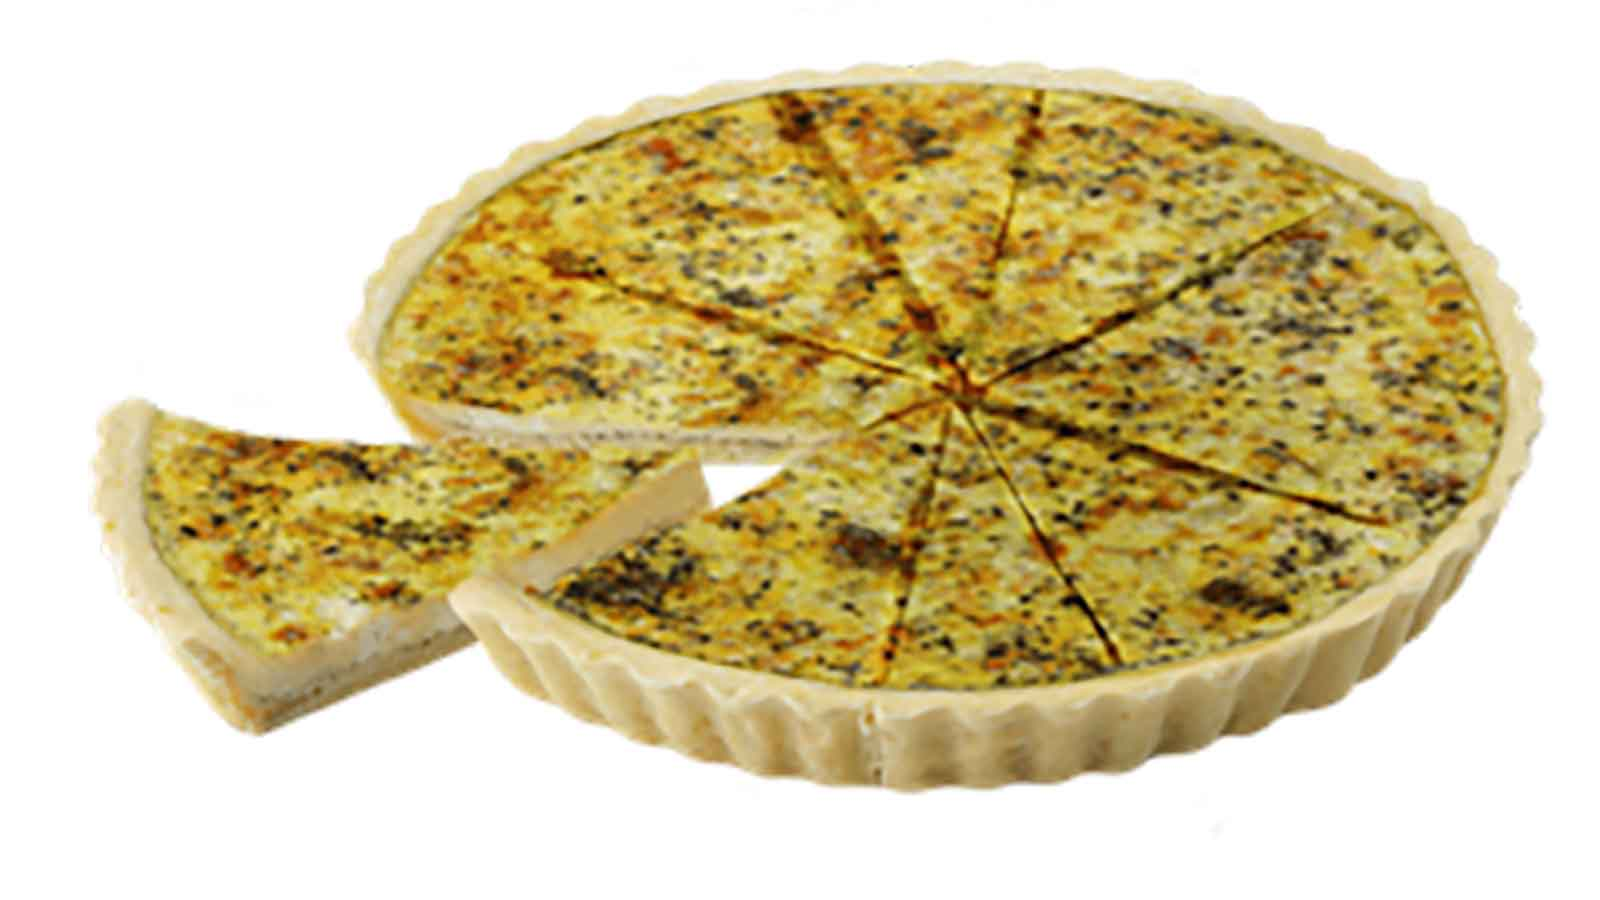 Quiche Sun-dried tomatoes with basil